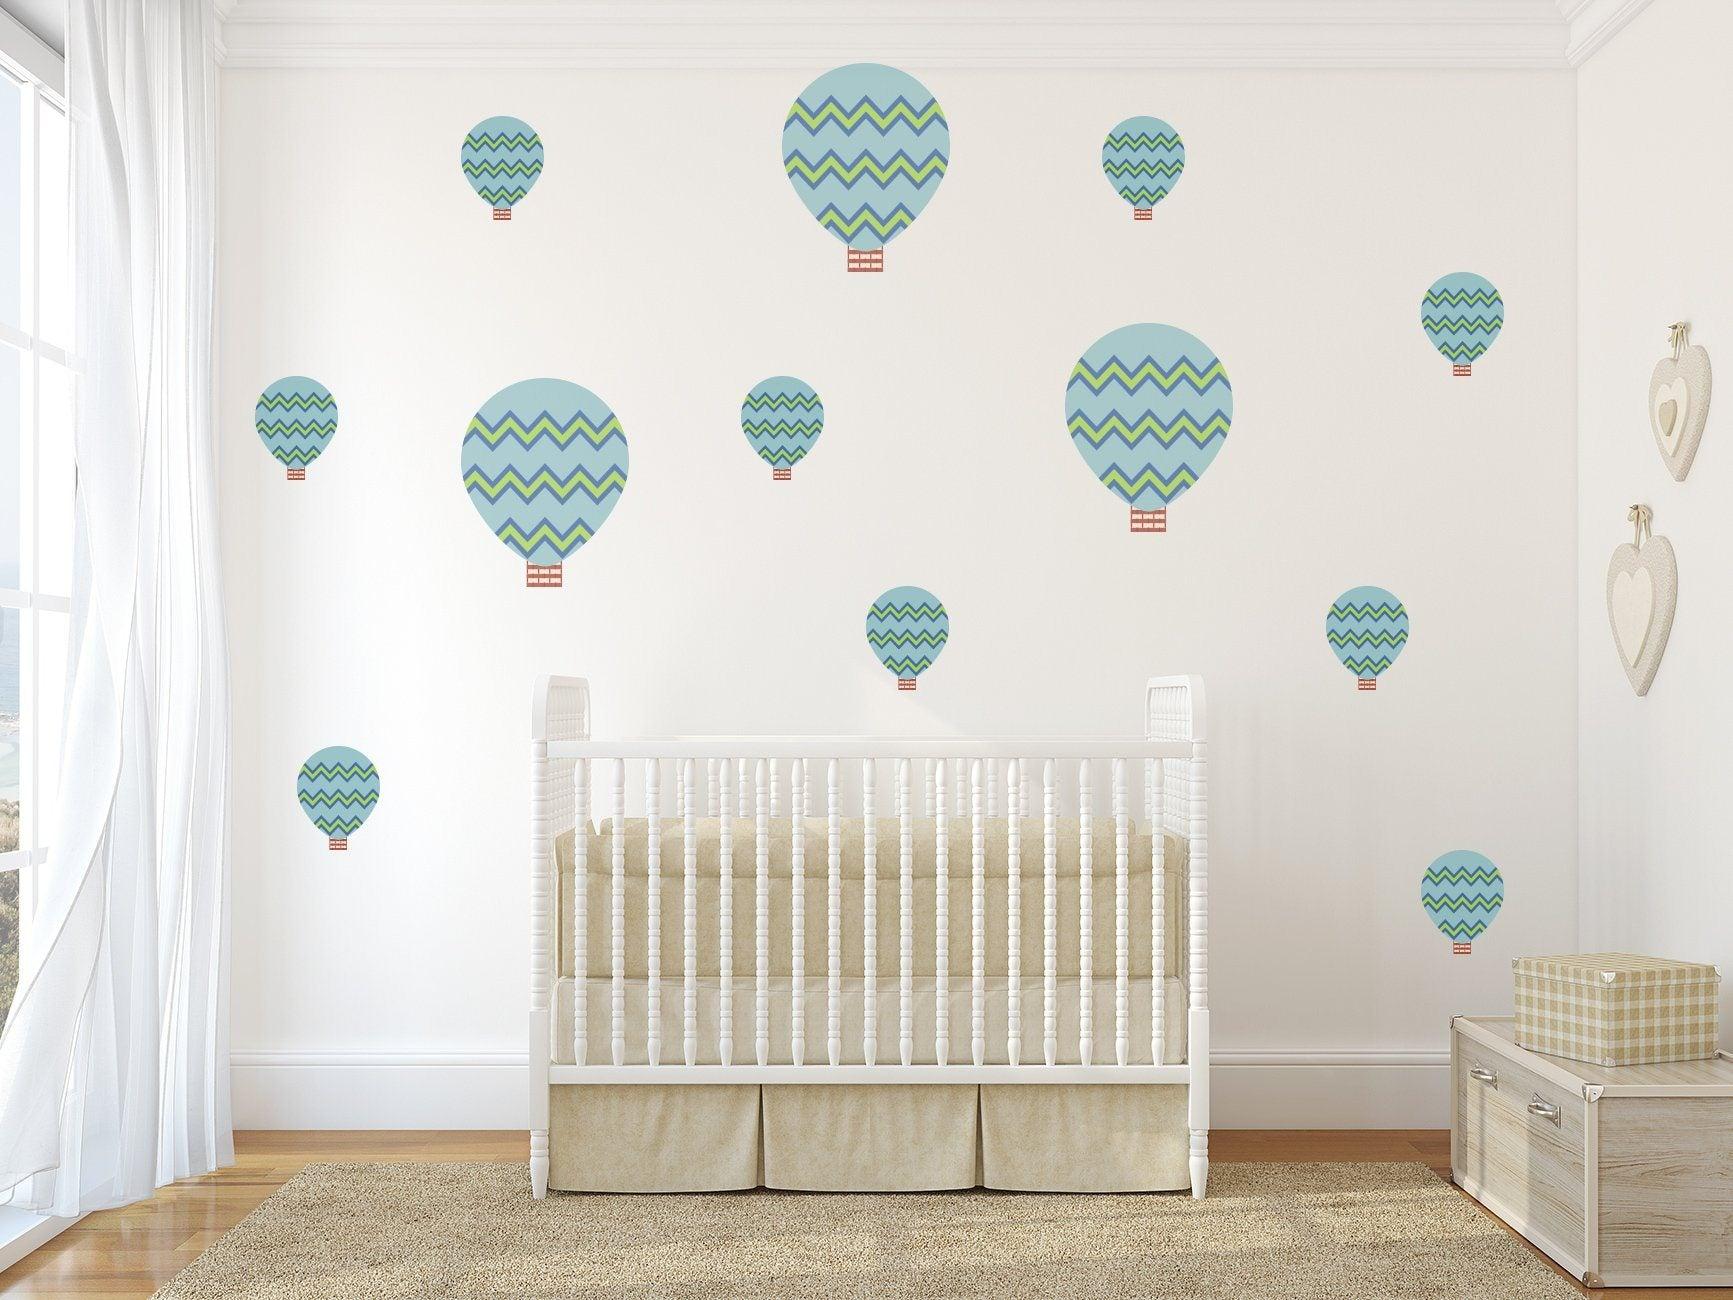 Zig Zag Hot Air Balloons Nursery Wall Art - Vinyl Wall Decals For Nurseries, Children's Rooms, And Home Decor